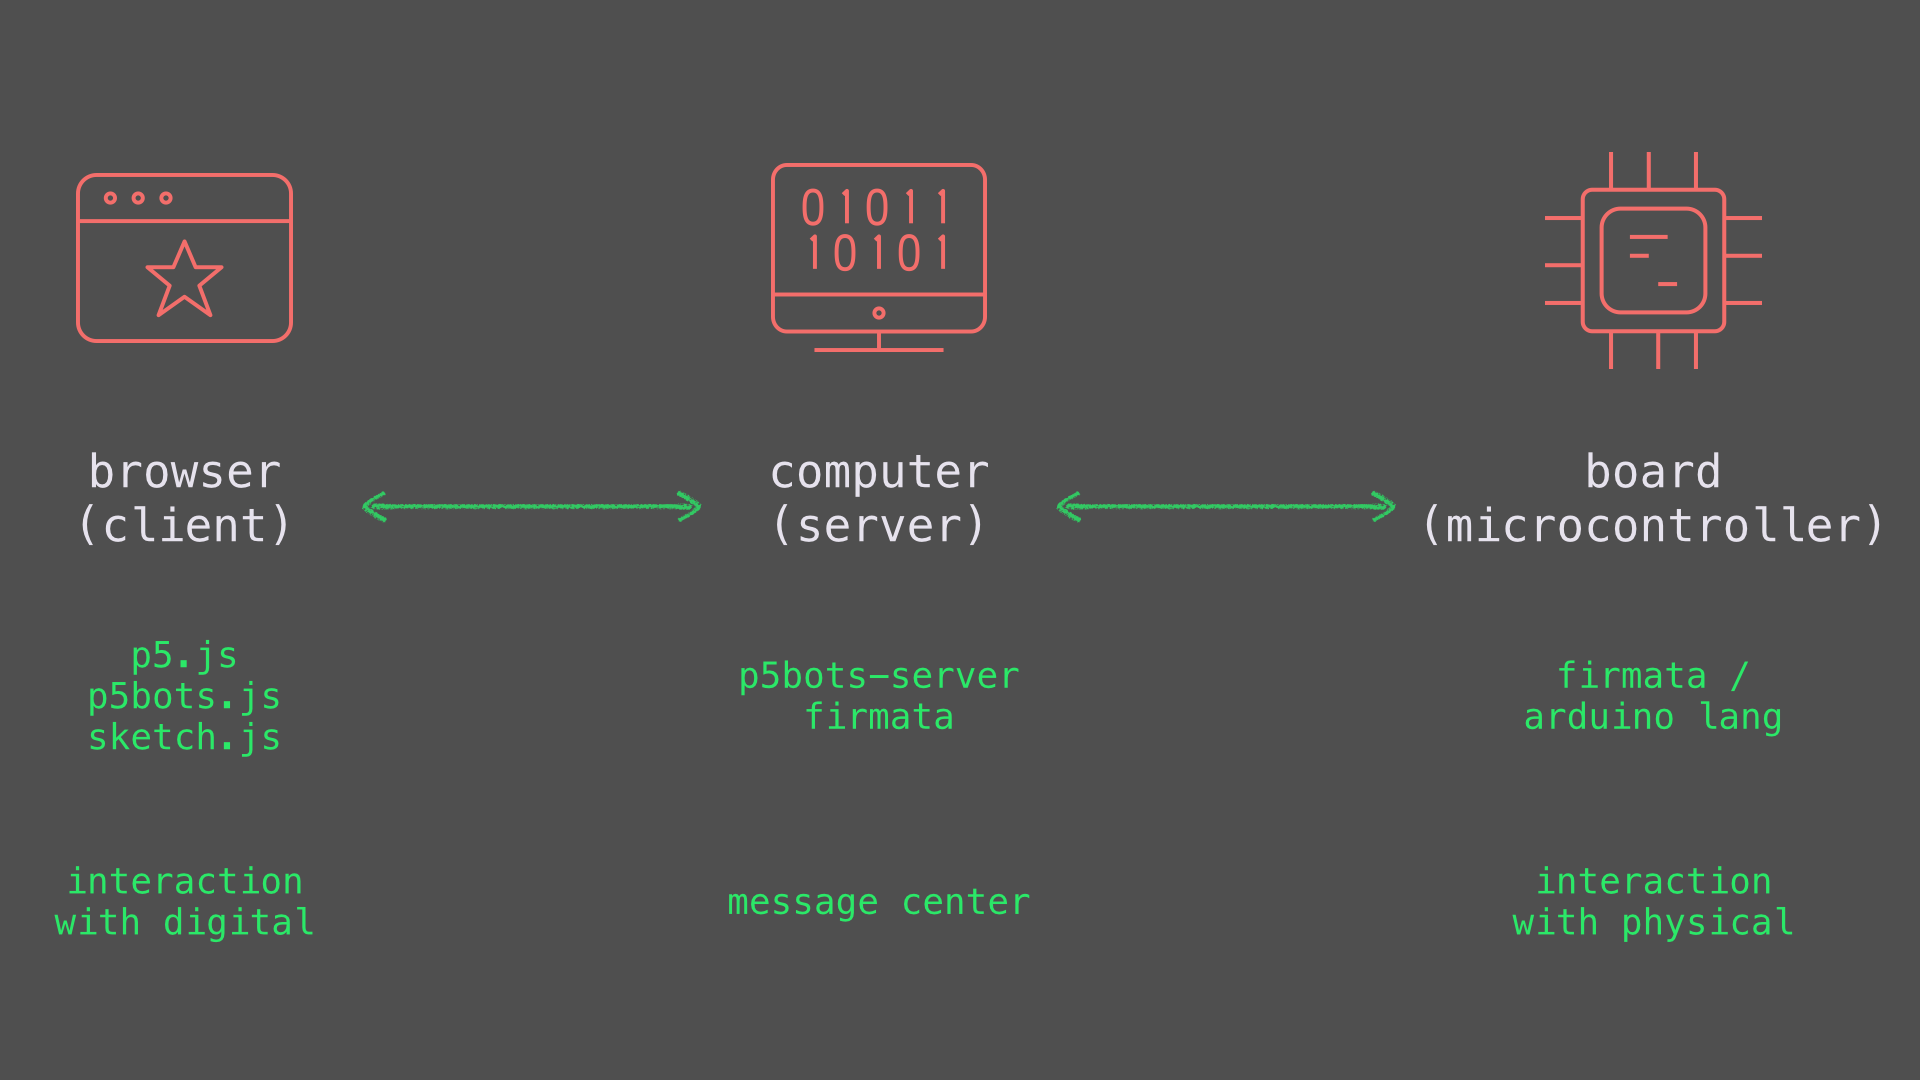 diagram of client, server, and microcontroller